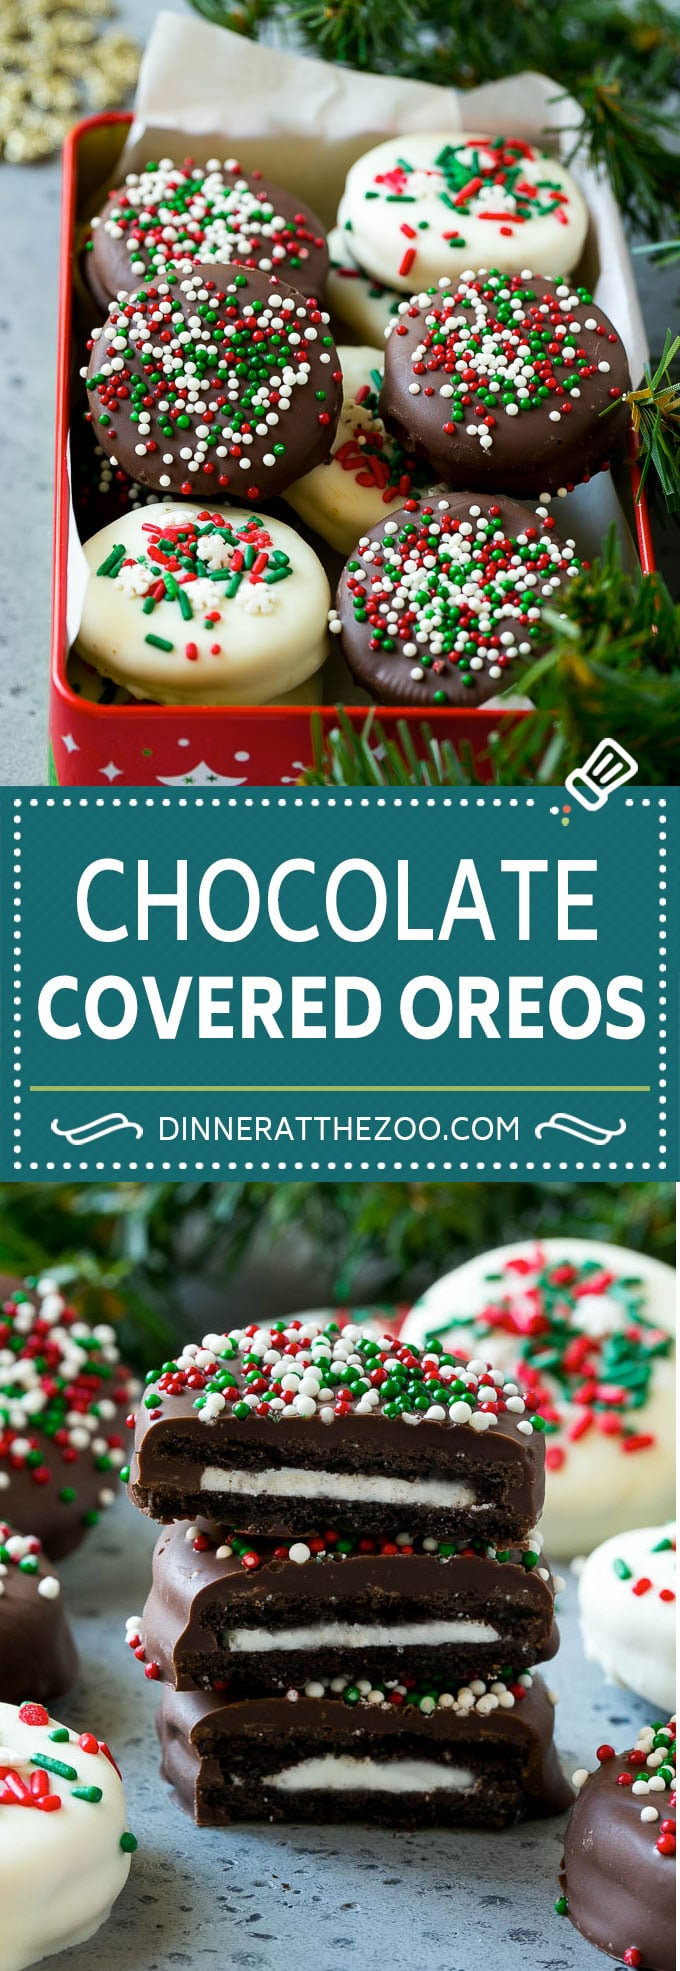 Chocolate Covered Oreos Recipe | Oreo Cookies | Chocolate Dipped Oreos #oreo #cookies #chocolate #sprinkles #dessert #dinneratthezoo